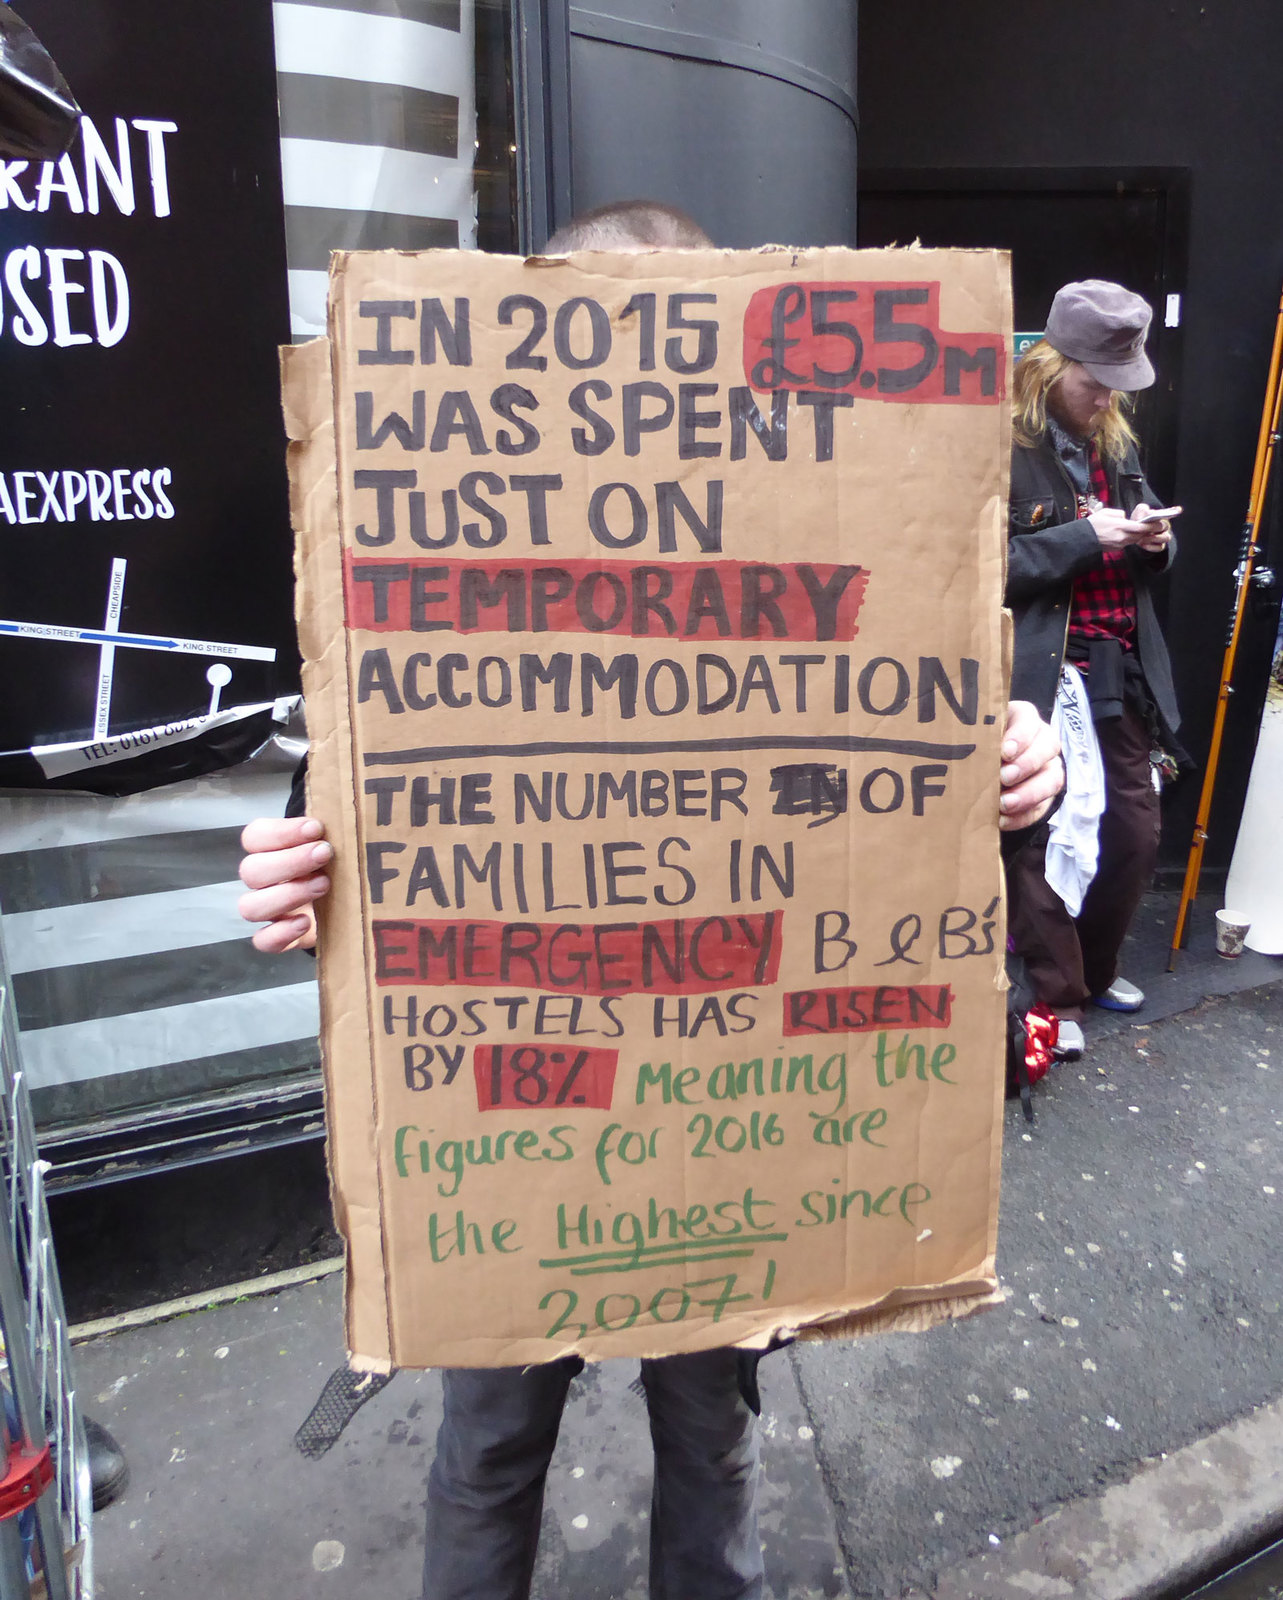 1482192892907-1pizza-jpg.34631_The anarchist squatters of Manchester_Squatting_Squat the Planet_11:53 AM